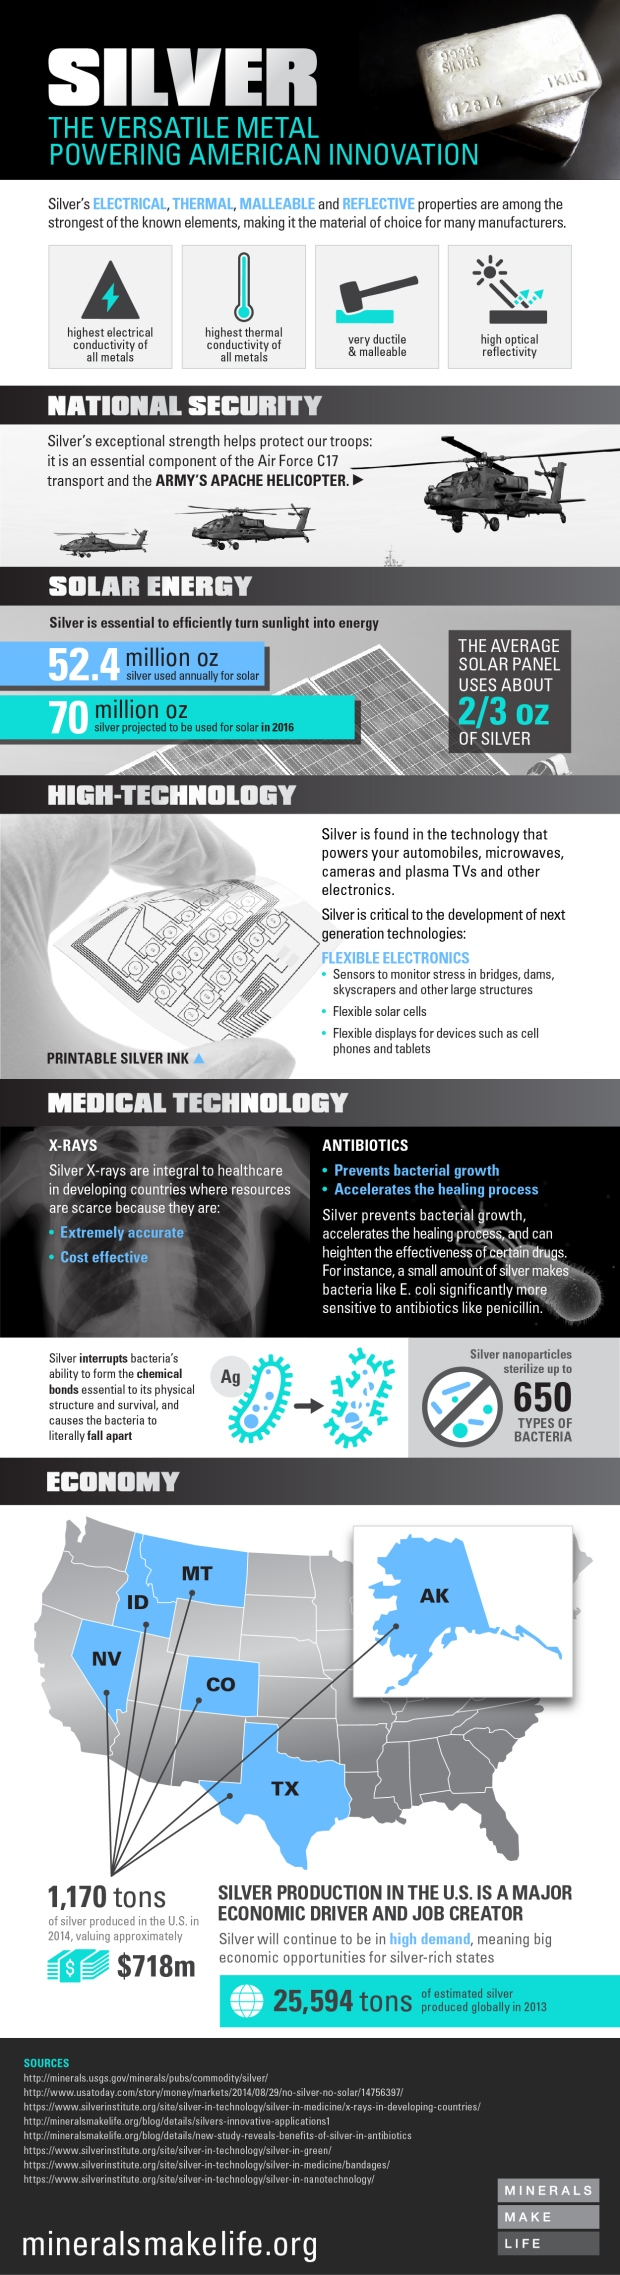 NMA_Silver_Infographic_FINAL2